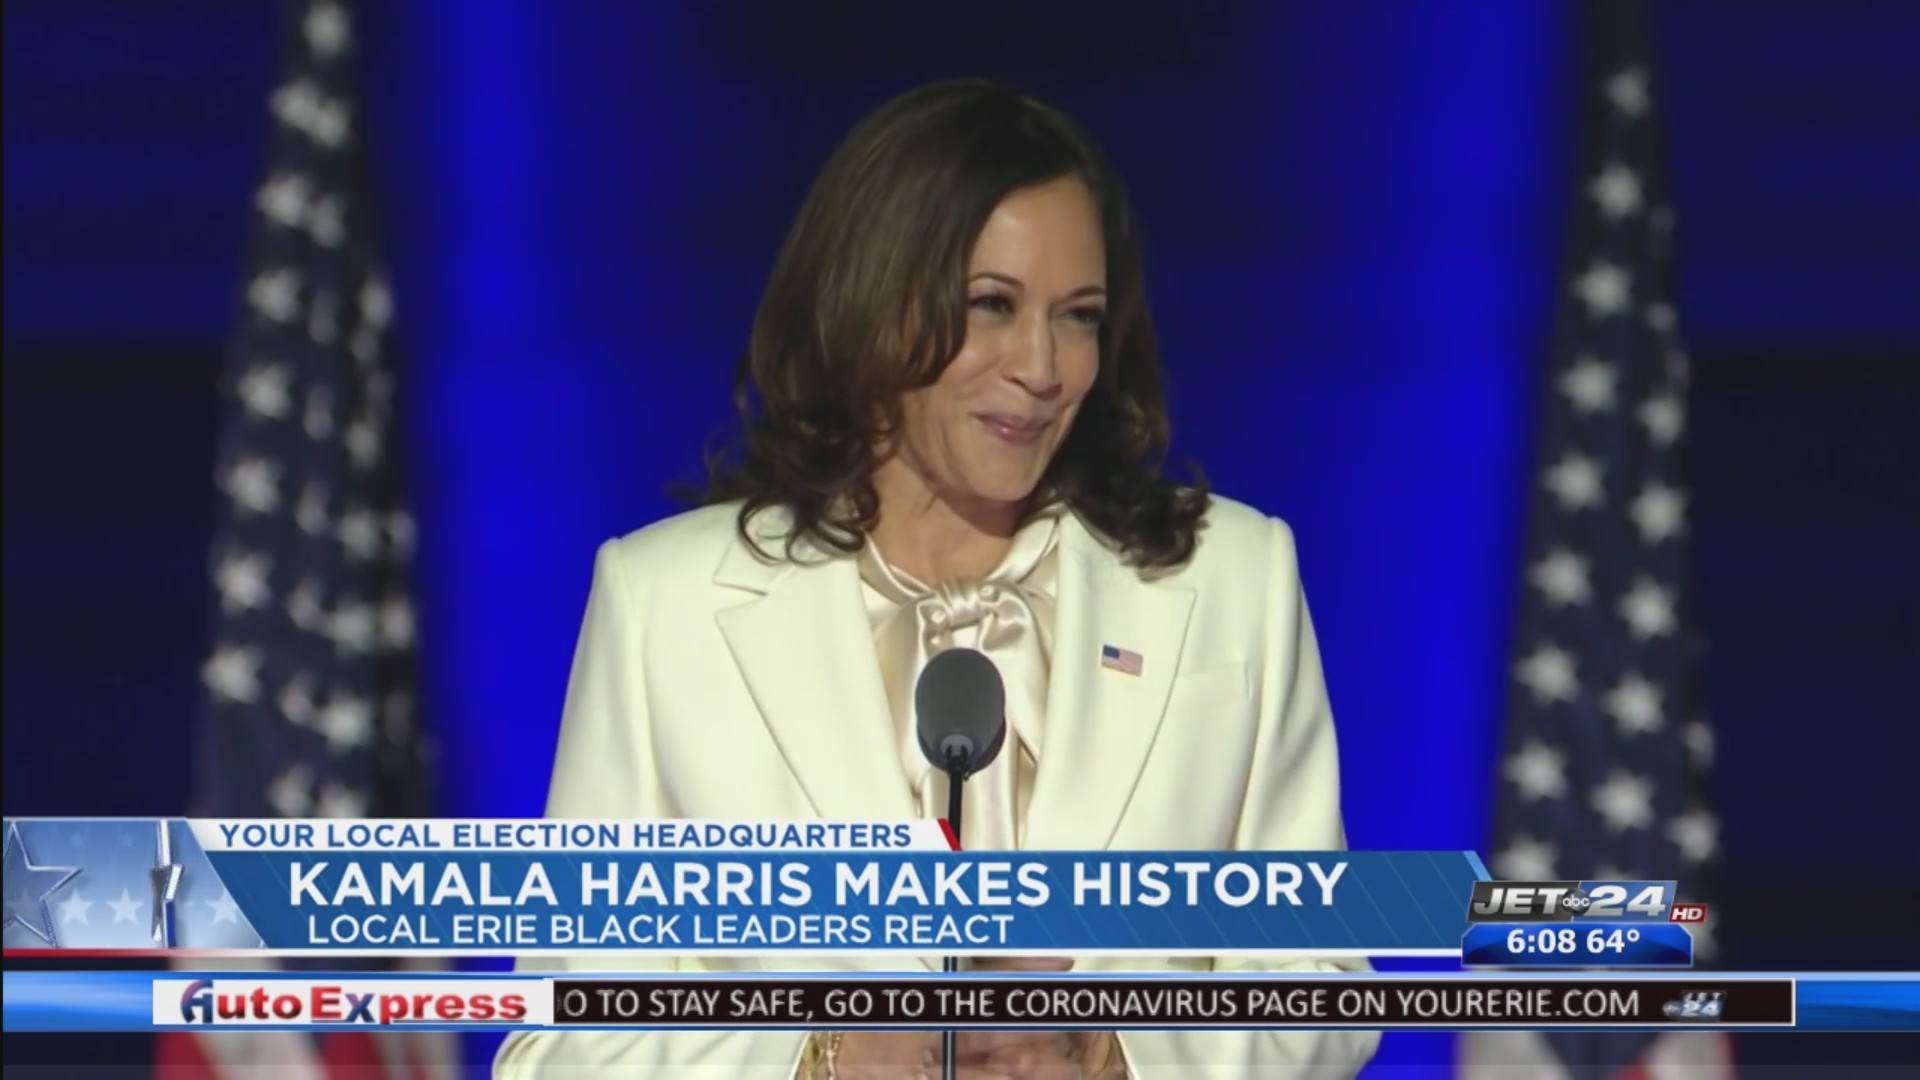 Local Leaders React To Kamala Harris Making History As The First Woman To Be Named Vice President Elect Wjet Wfxp Yourerie Com